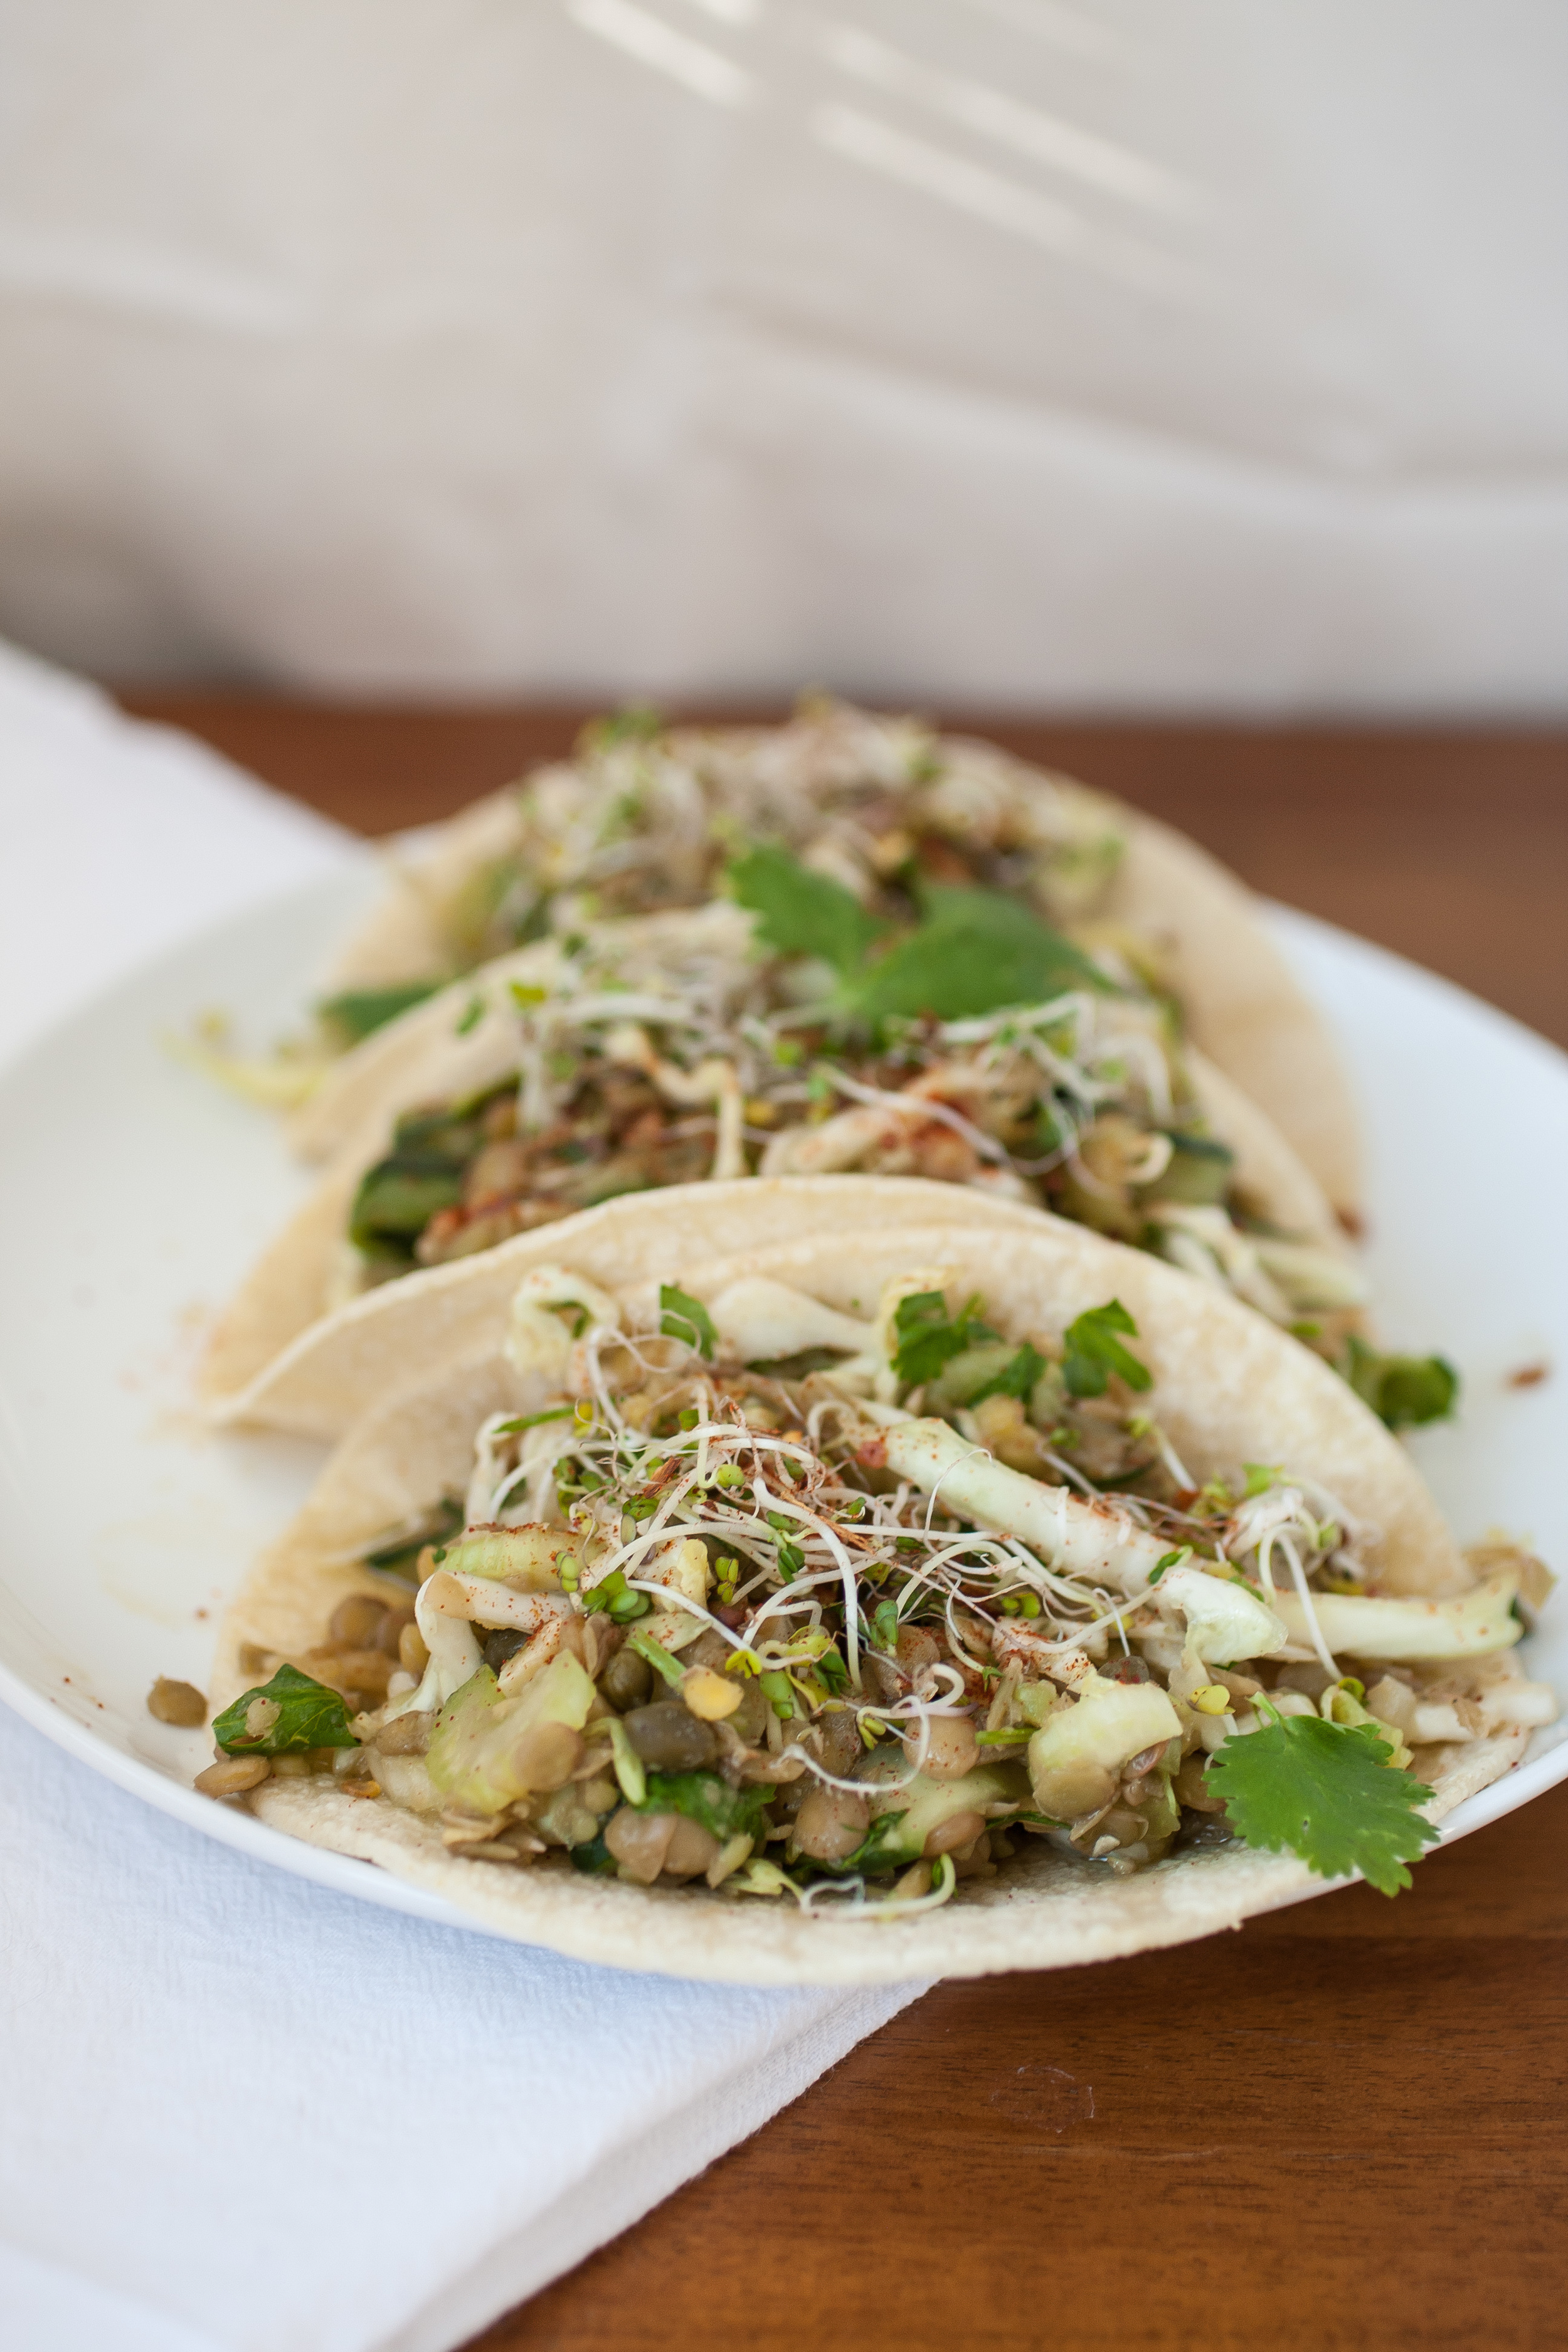 Produce On Parade - Lentil Salad w/ Cucumber & Cabbage - This is a hearty lentil salad filled with refreshing cucumber, crunchy cabbage, celery, and pepitas. It cooks up in 30 minutes flat and is a great as a side, abed leafy greens, or used as a filling in corn tortillas!